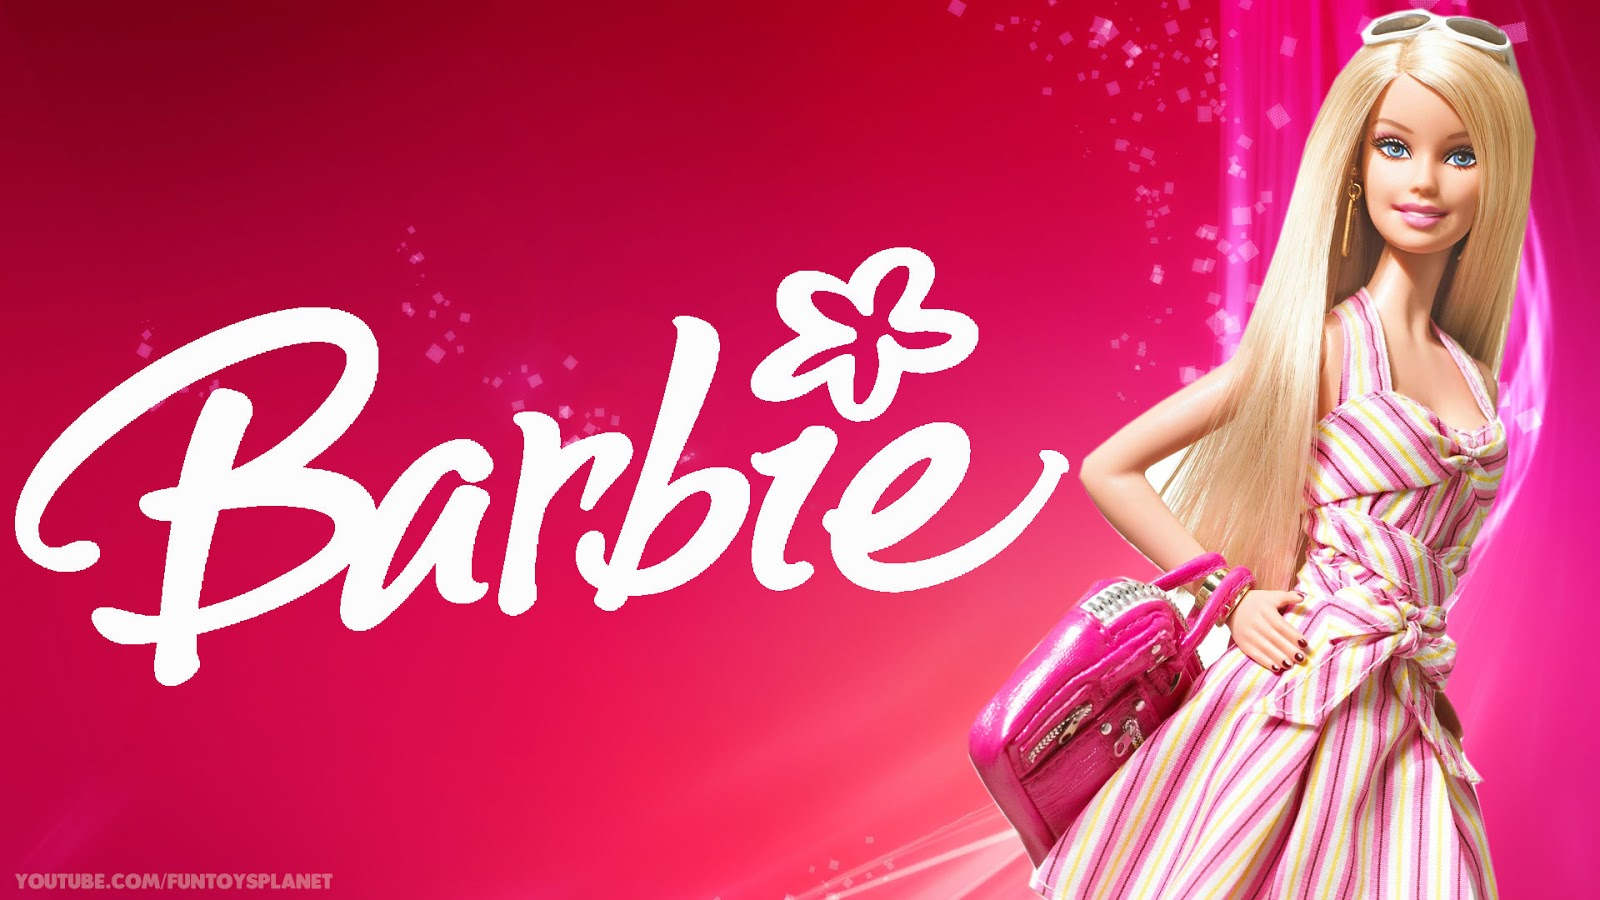 Fondos De Pantalla En Hd: Fondos De Pantalla De Barbie, Wallpapers HD Gratis